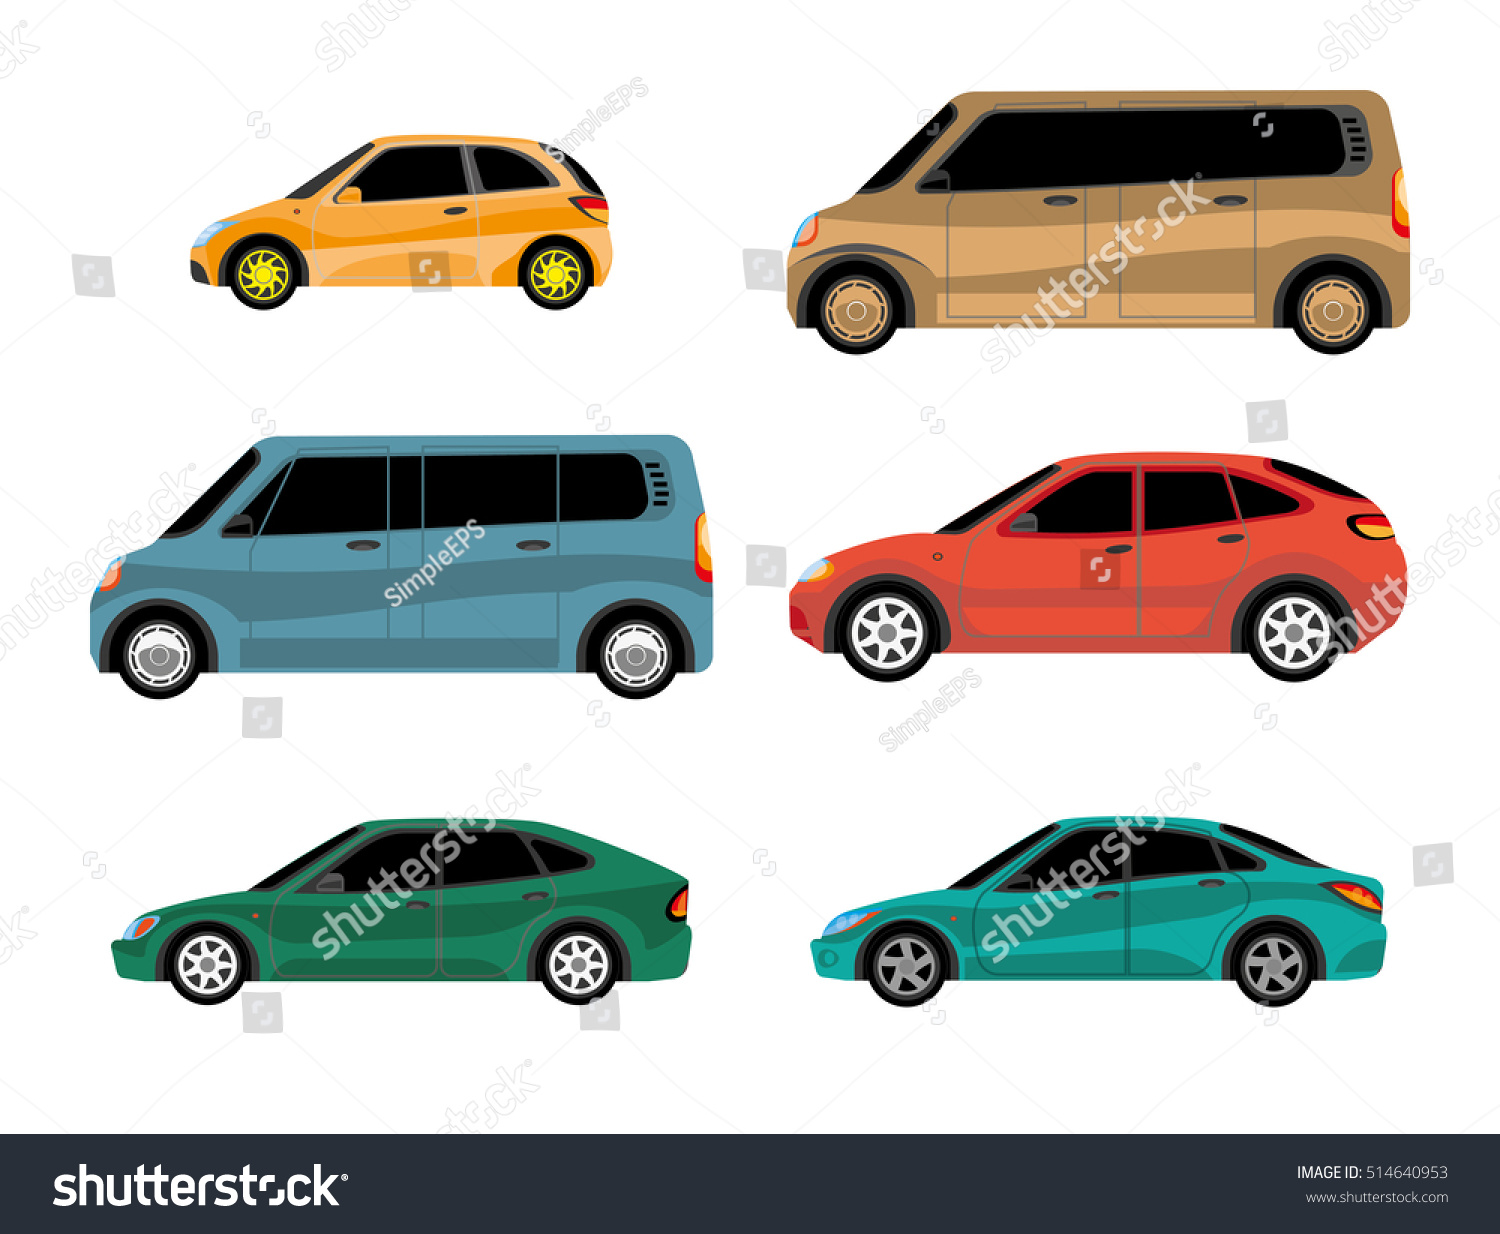 Design cars different types body painting stock vector for Different types of paint for art